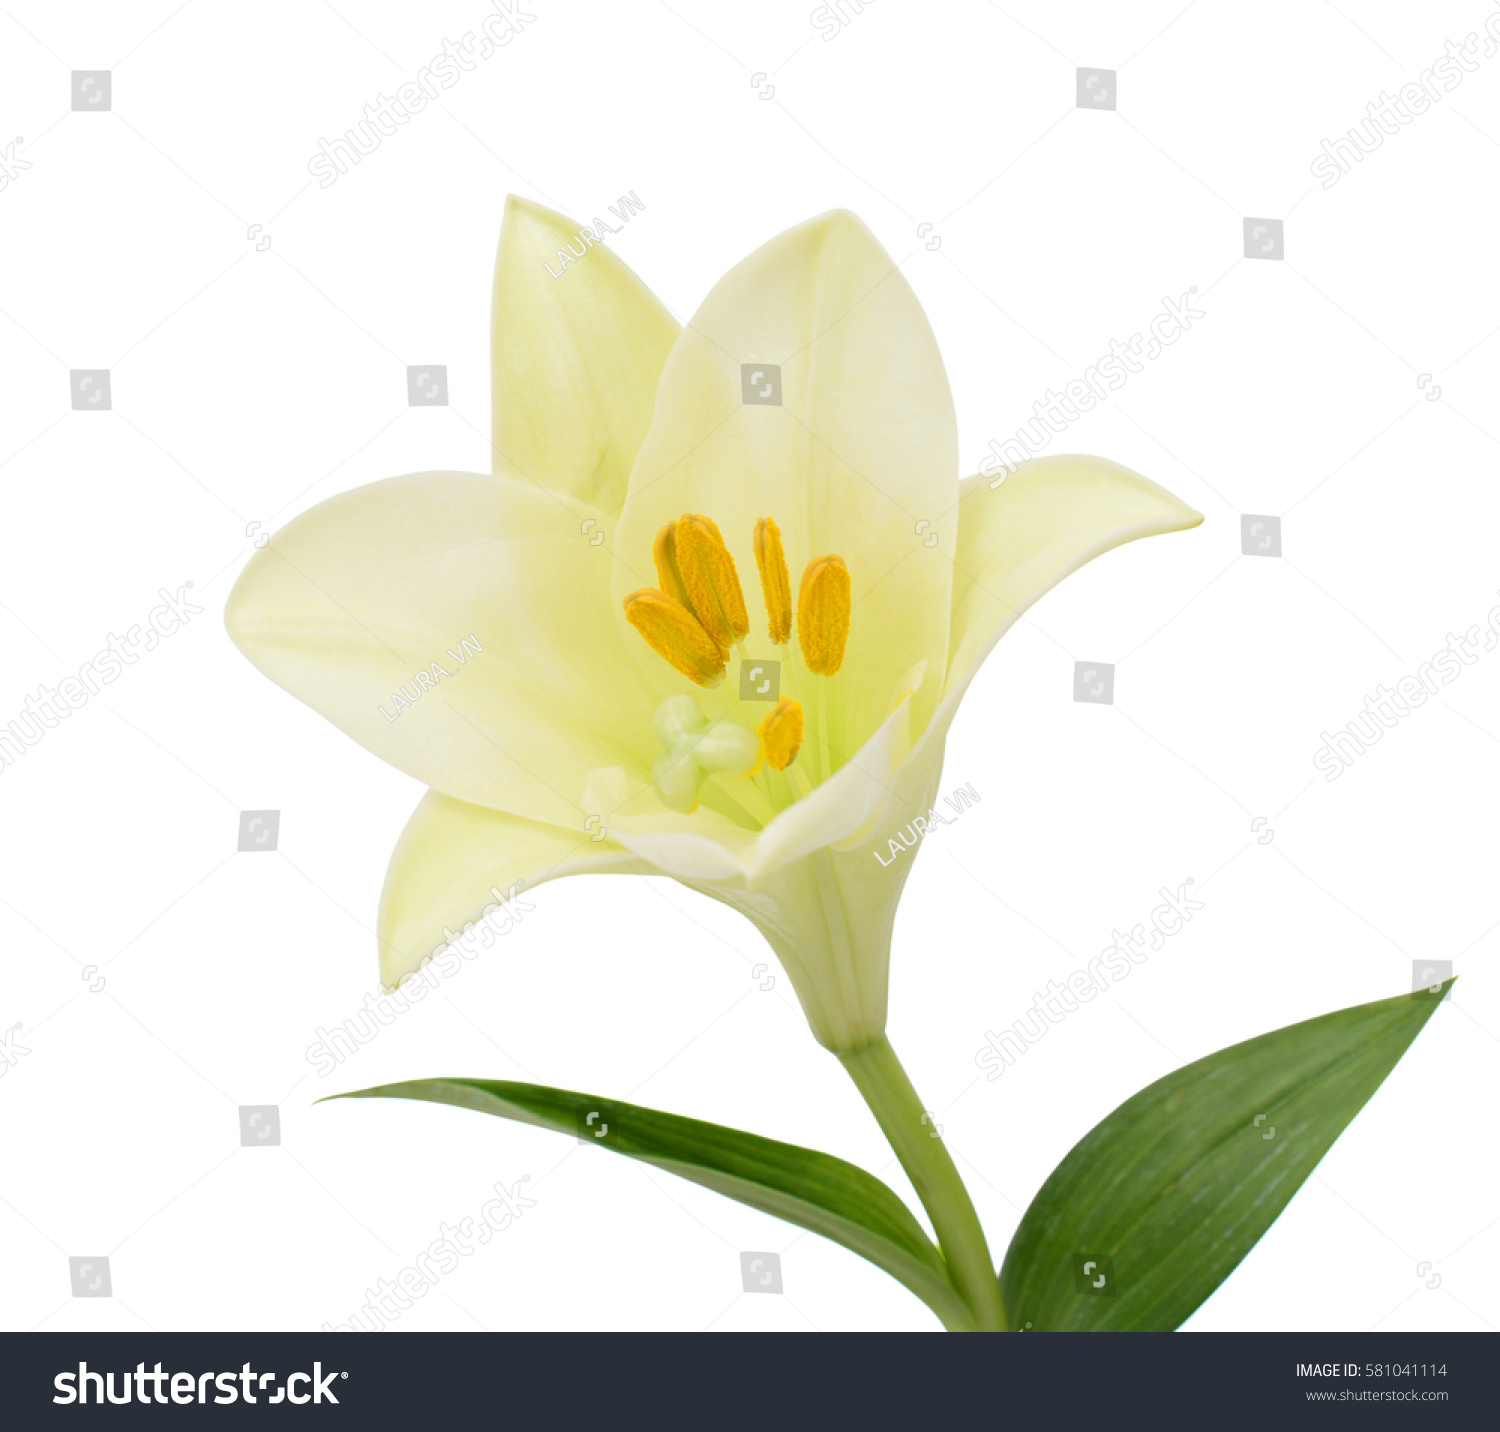 Beautiful easter lily flower isolated on white background ez canvas id 581041114 izmirmasajfo